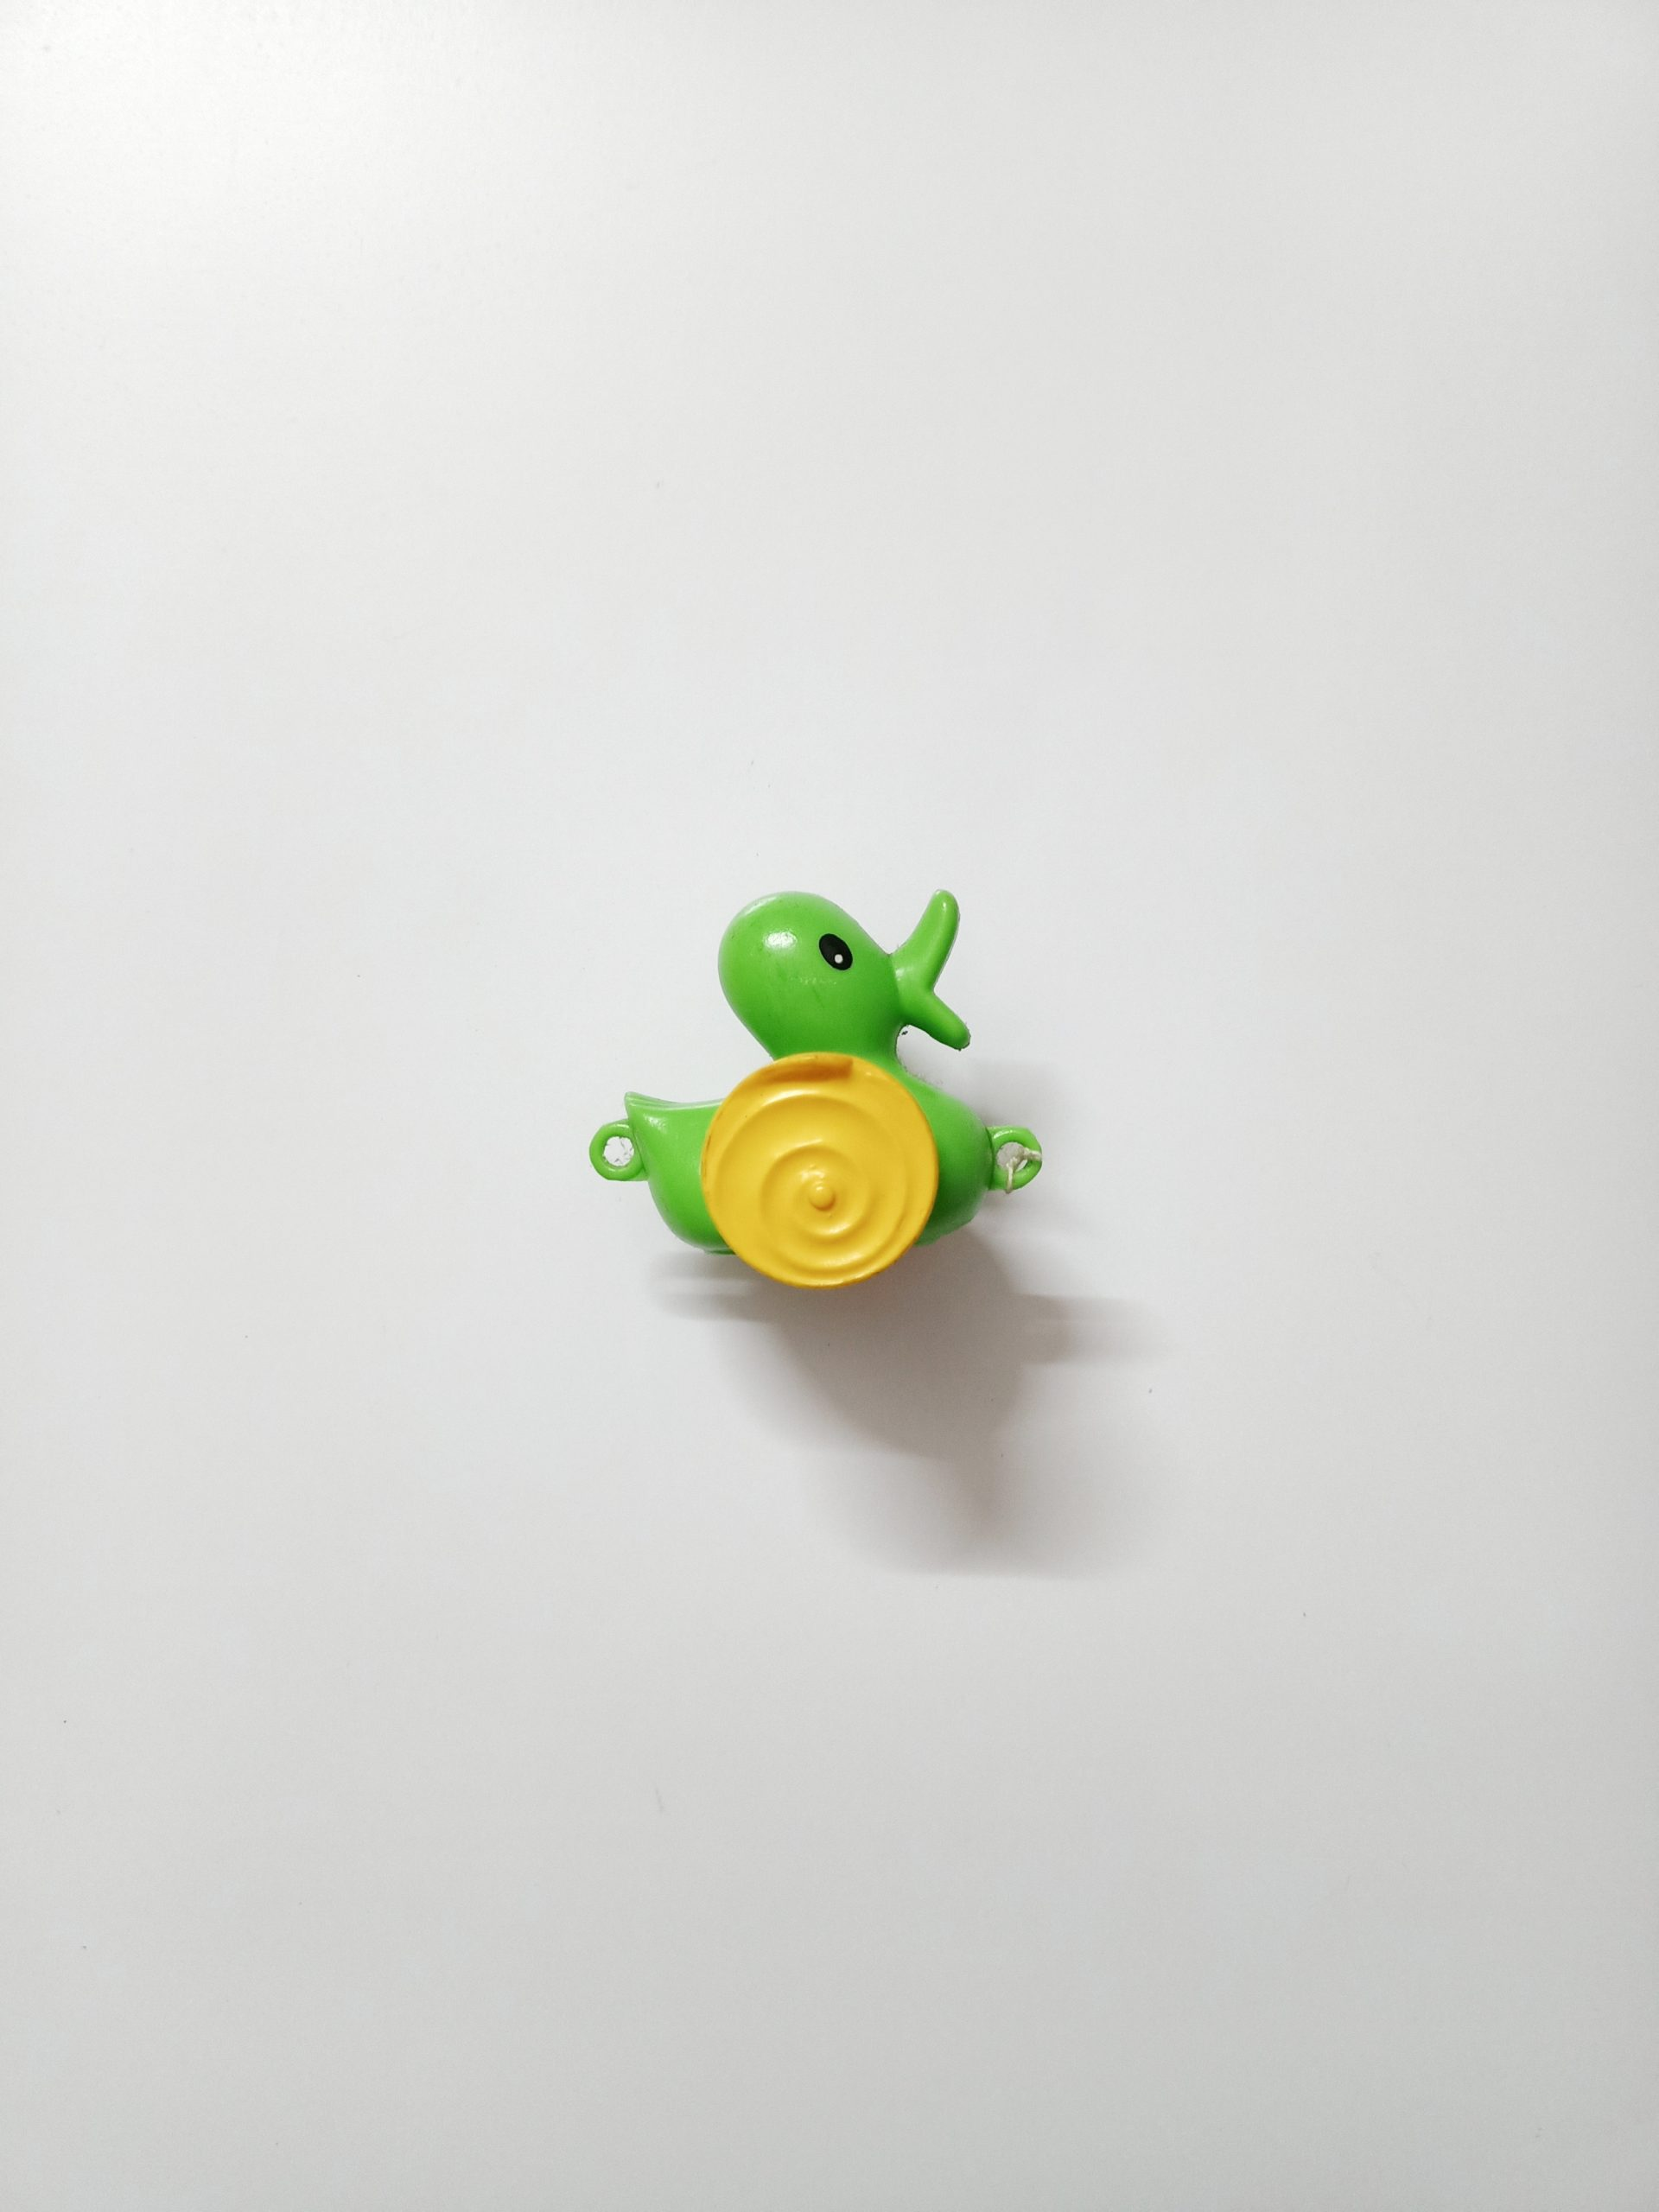 A toy duck for kids